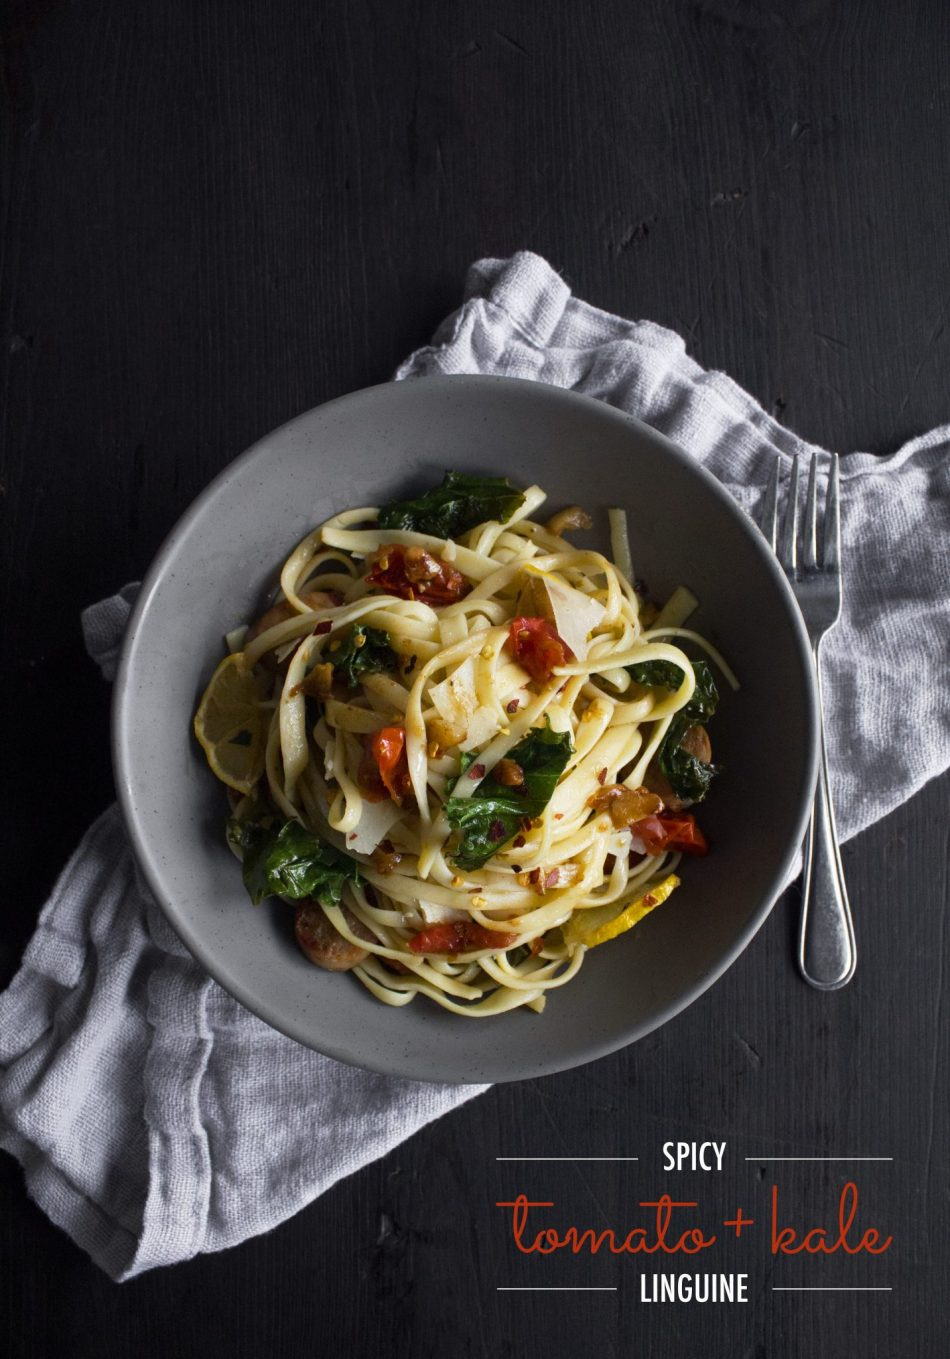 Spicy Tomato and Kale Linguine | A healthy and delicious dinner in less than 30 minutes!